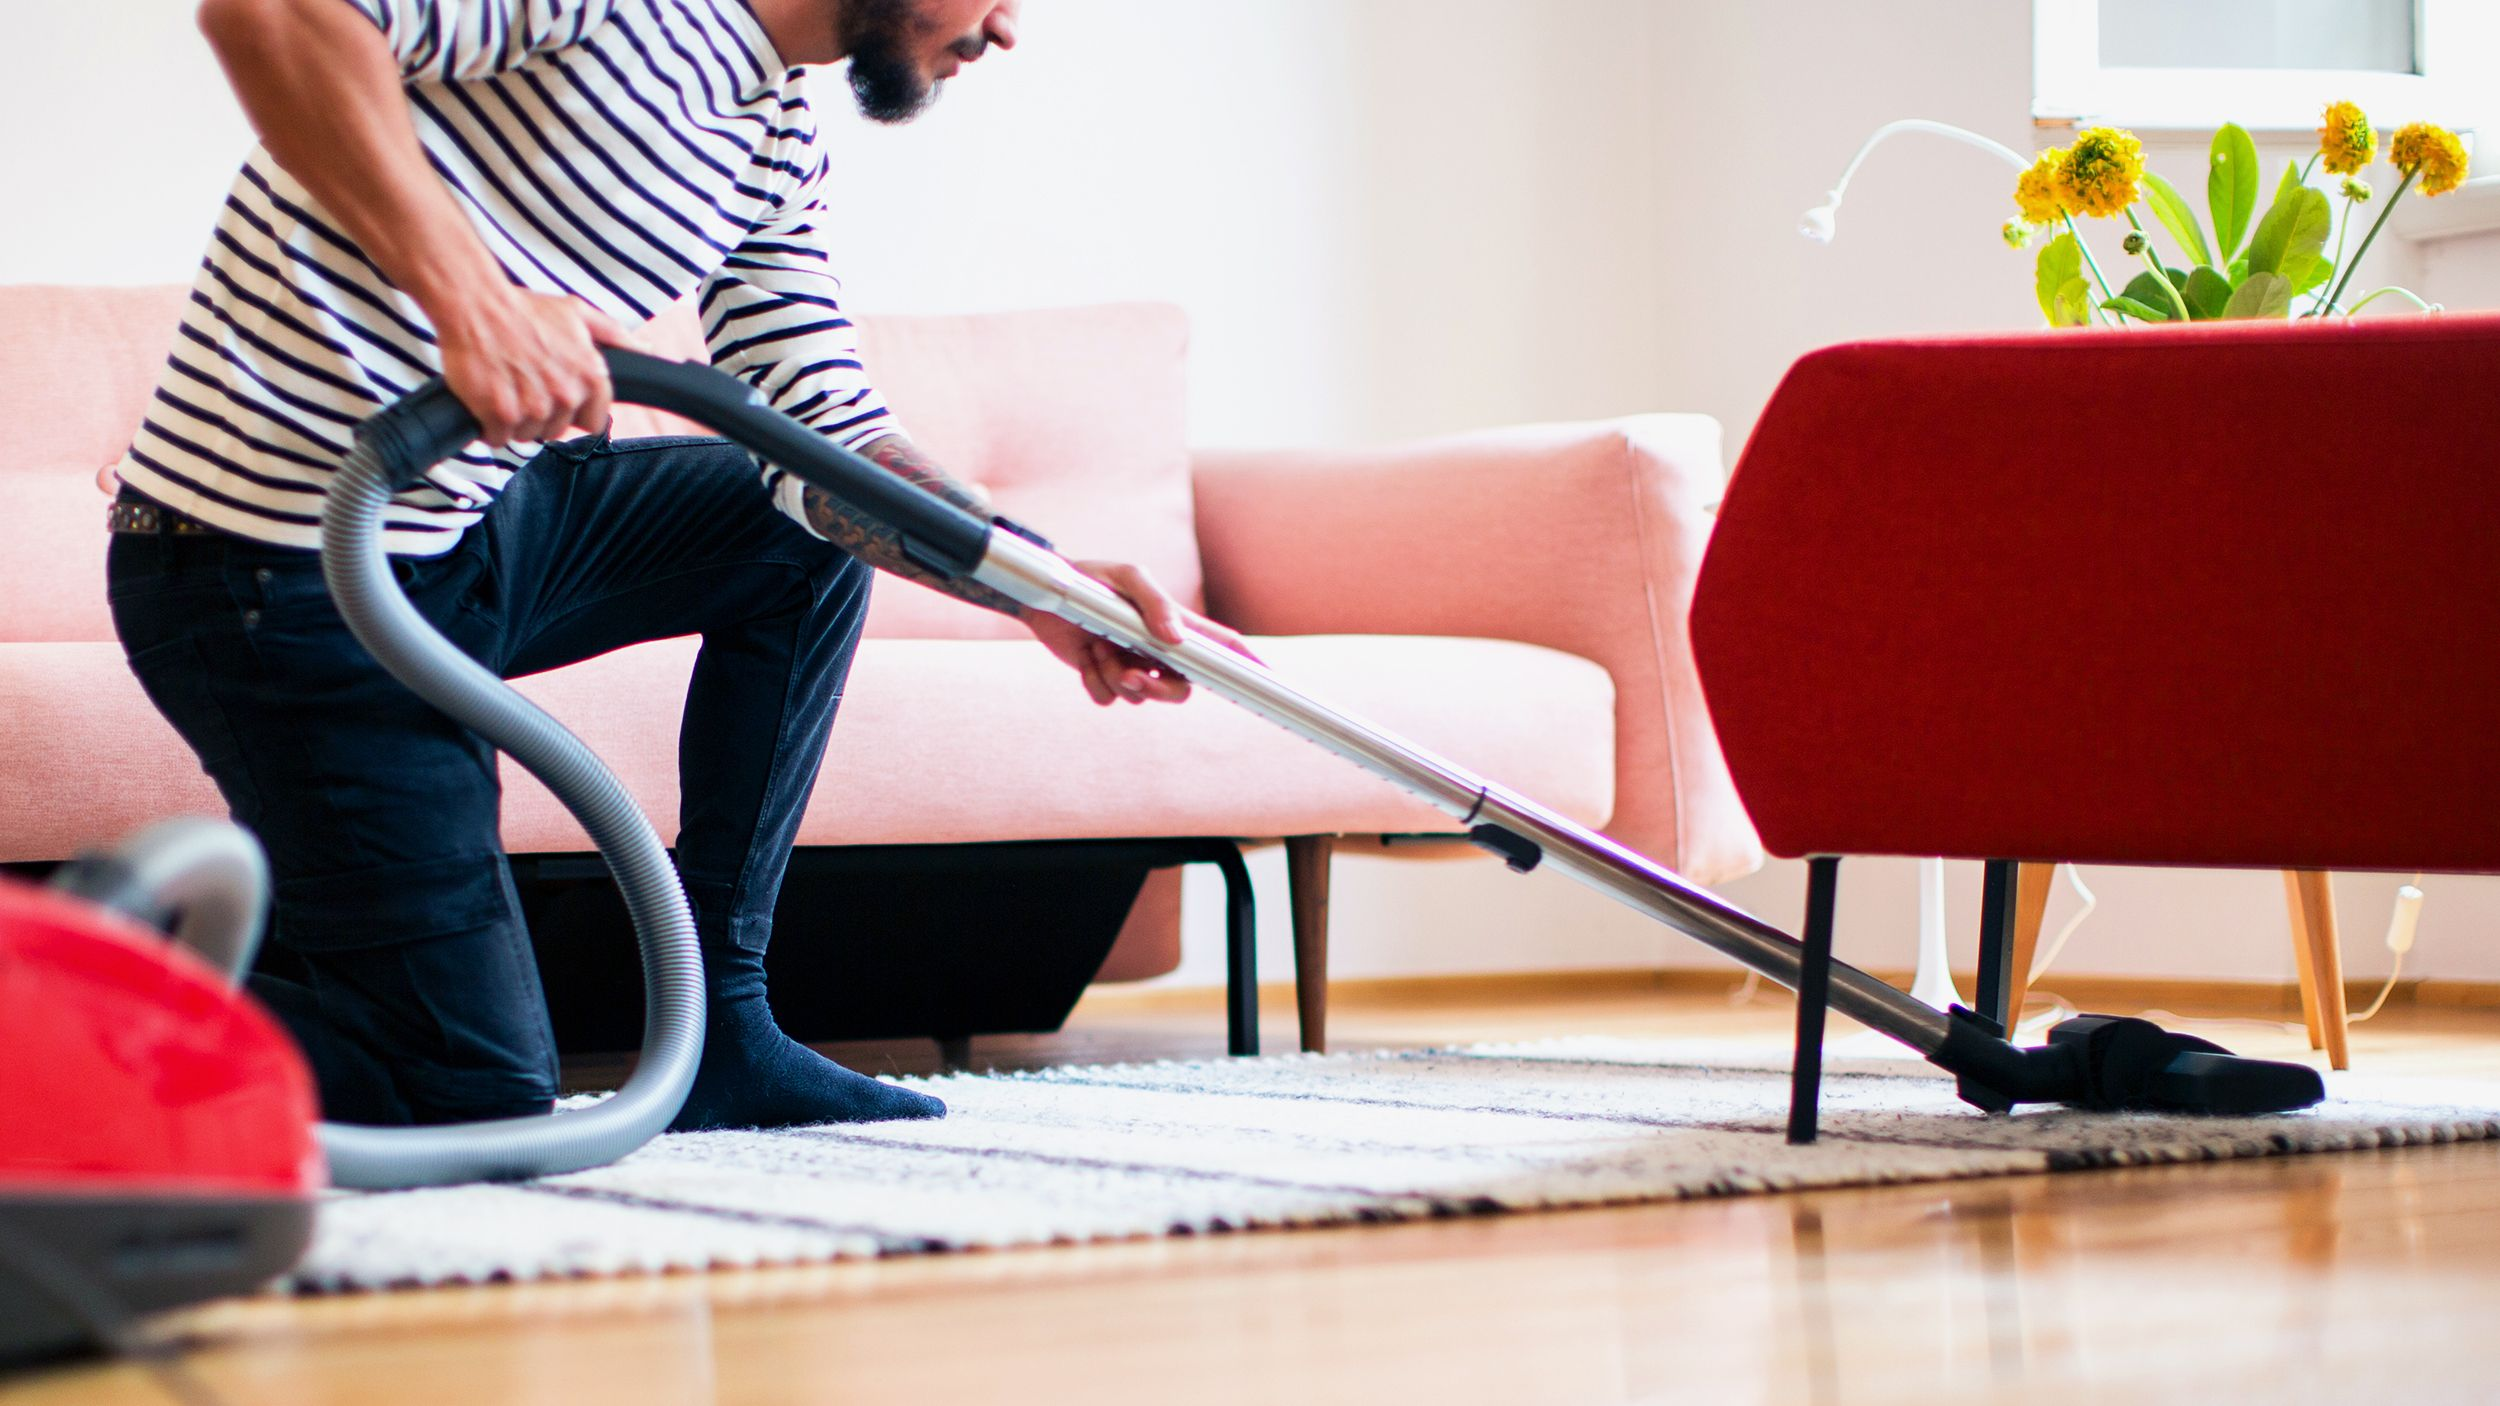 9 Best Vacuum Cleaners Of 2019 Top Vacuum Cleaners Tested Reviewed